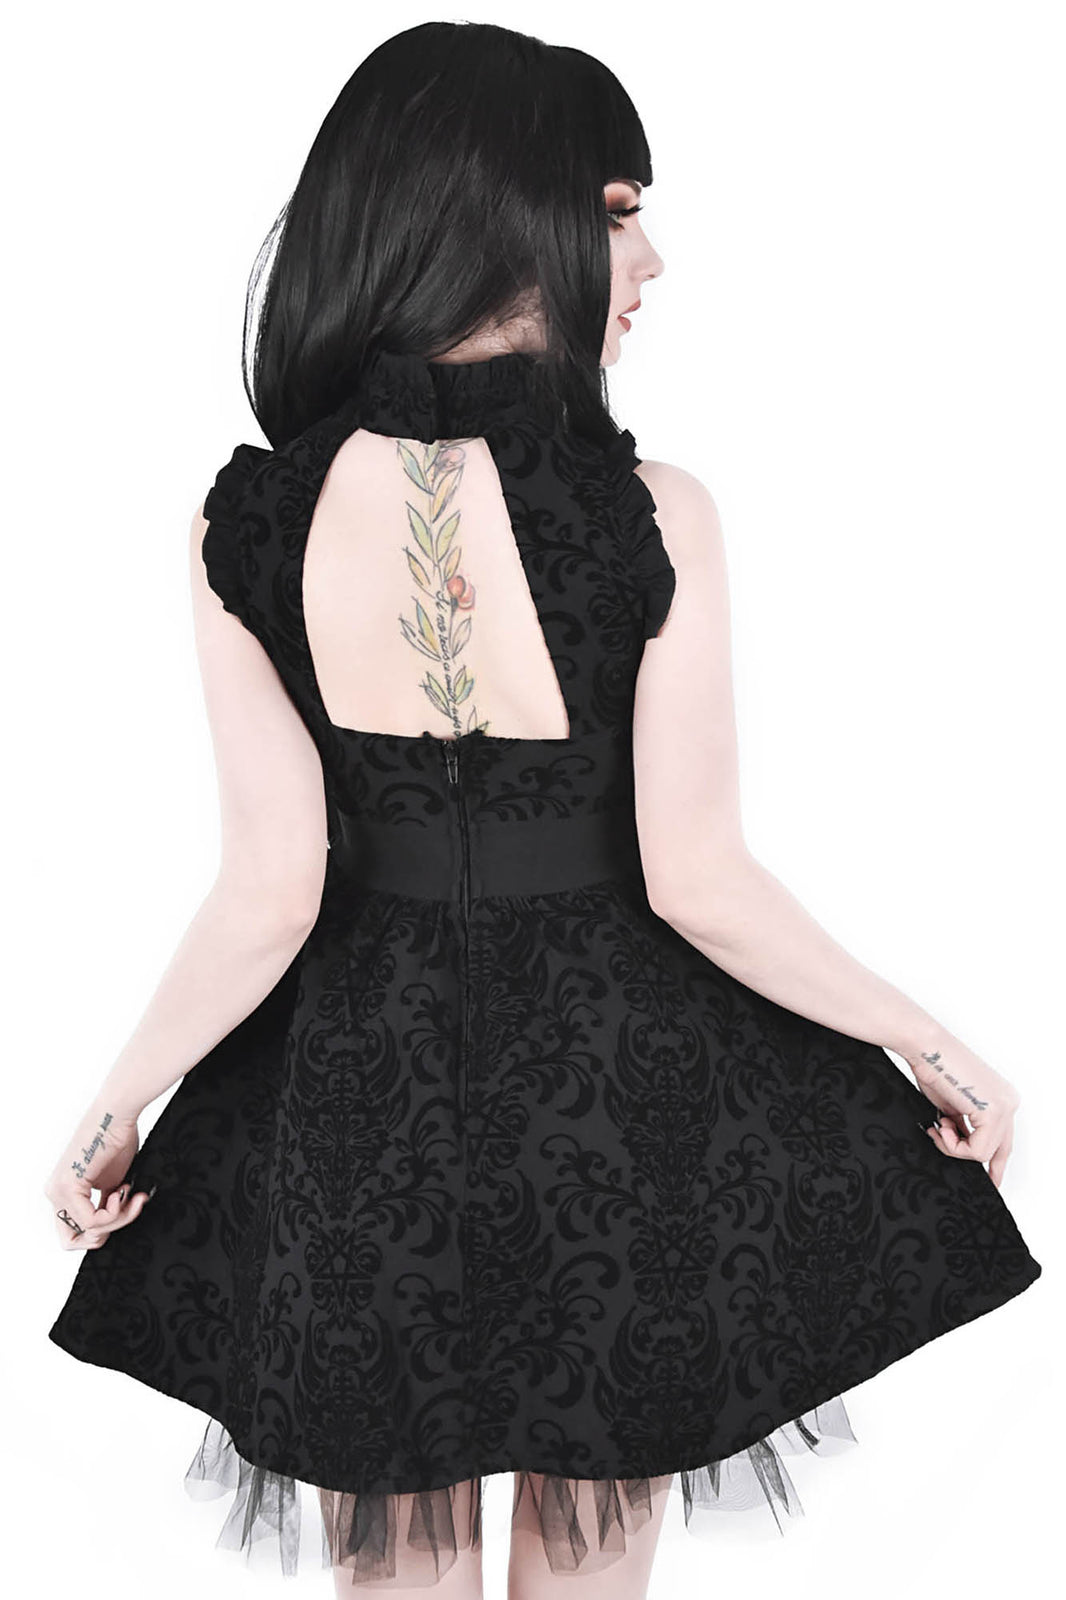 Bloodlust Party Dress